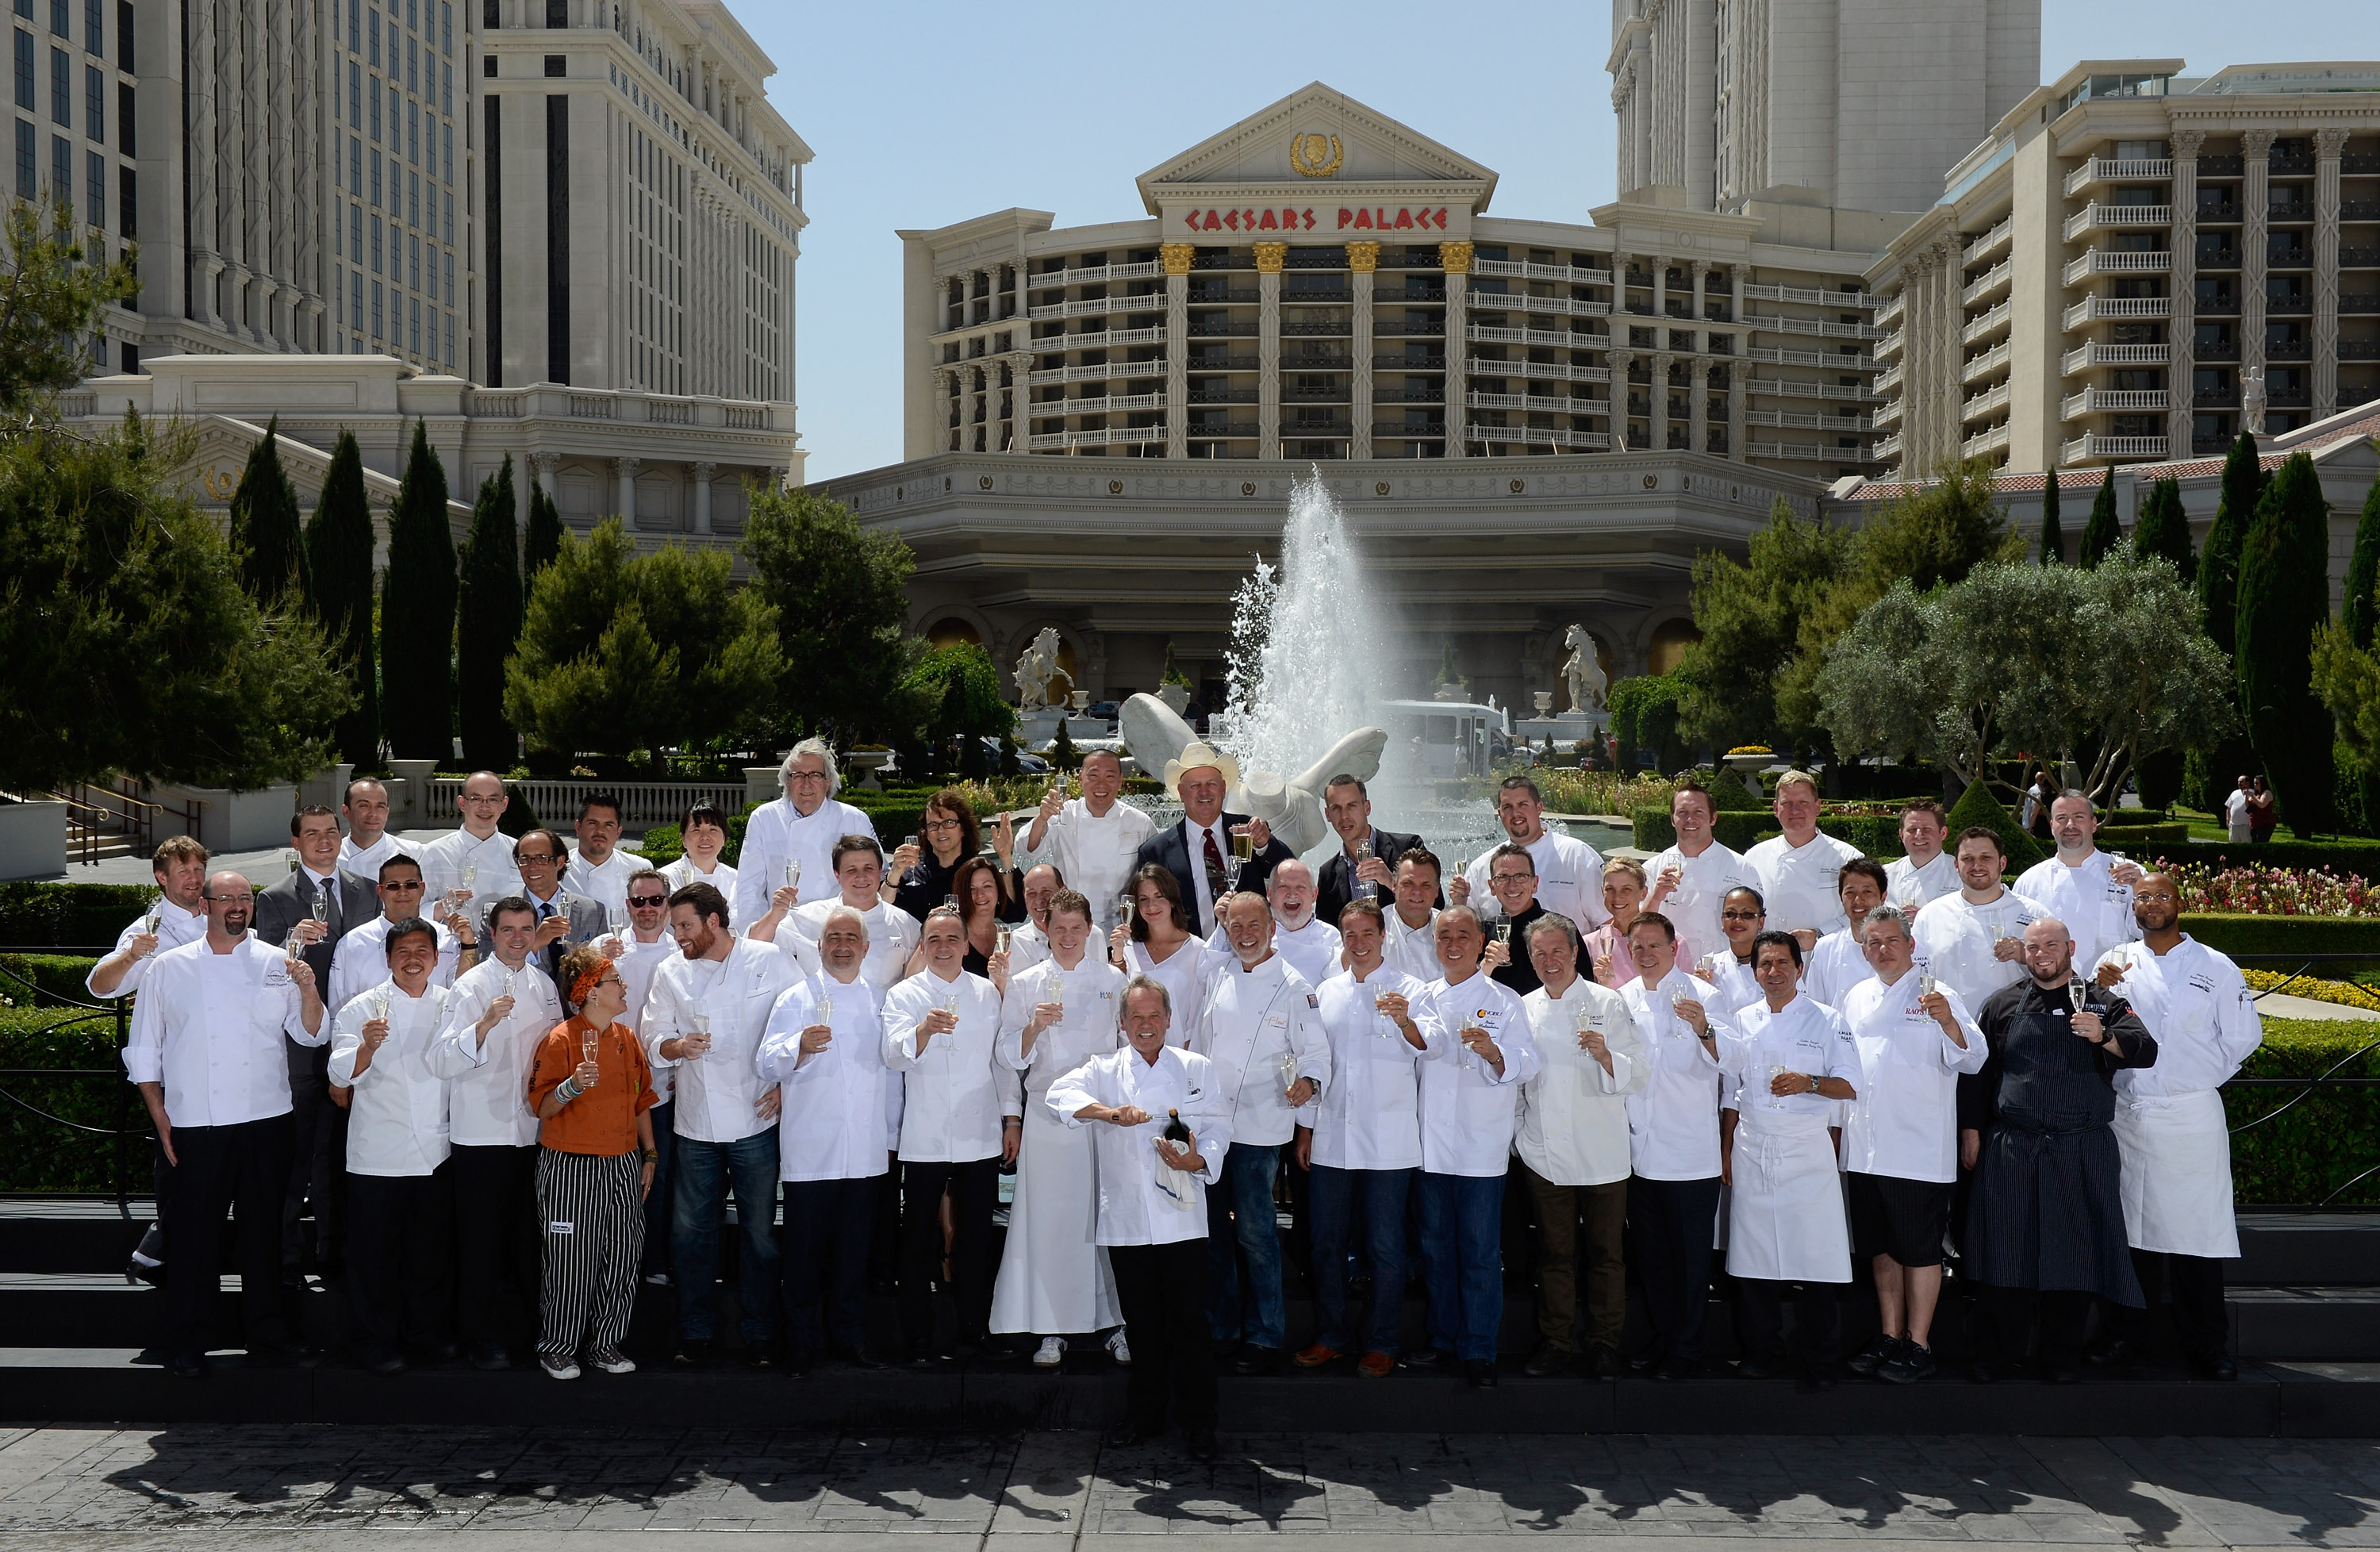 LAS VEGAS, NV - MAY 10: Chef Wolfgang Puck (C) along with chefs from the Bellagio, Caesars Palace, The Cosmopolitan of Las Vegas and the Mandalay Bay Resort &amp; Casino mark the beginning of the sixth annual Vegas Uncork&#39;d by Bon Appetit culinary festival and the 20th anniversary of Puck&#39;s Spago restaurant with a ceremonial Mionetto Prosecco saber-off in front of Caesars Palace May 10, 2012 in Las Vegas, Nevada. (Photo by Ethan Miller/Getty Images for Vegas Uncork&#39;d)